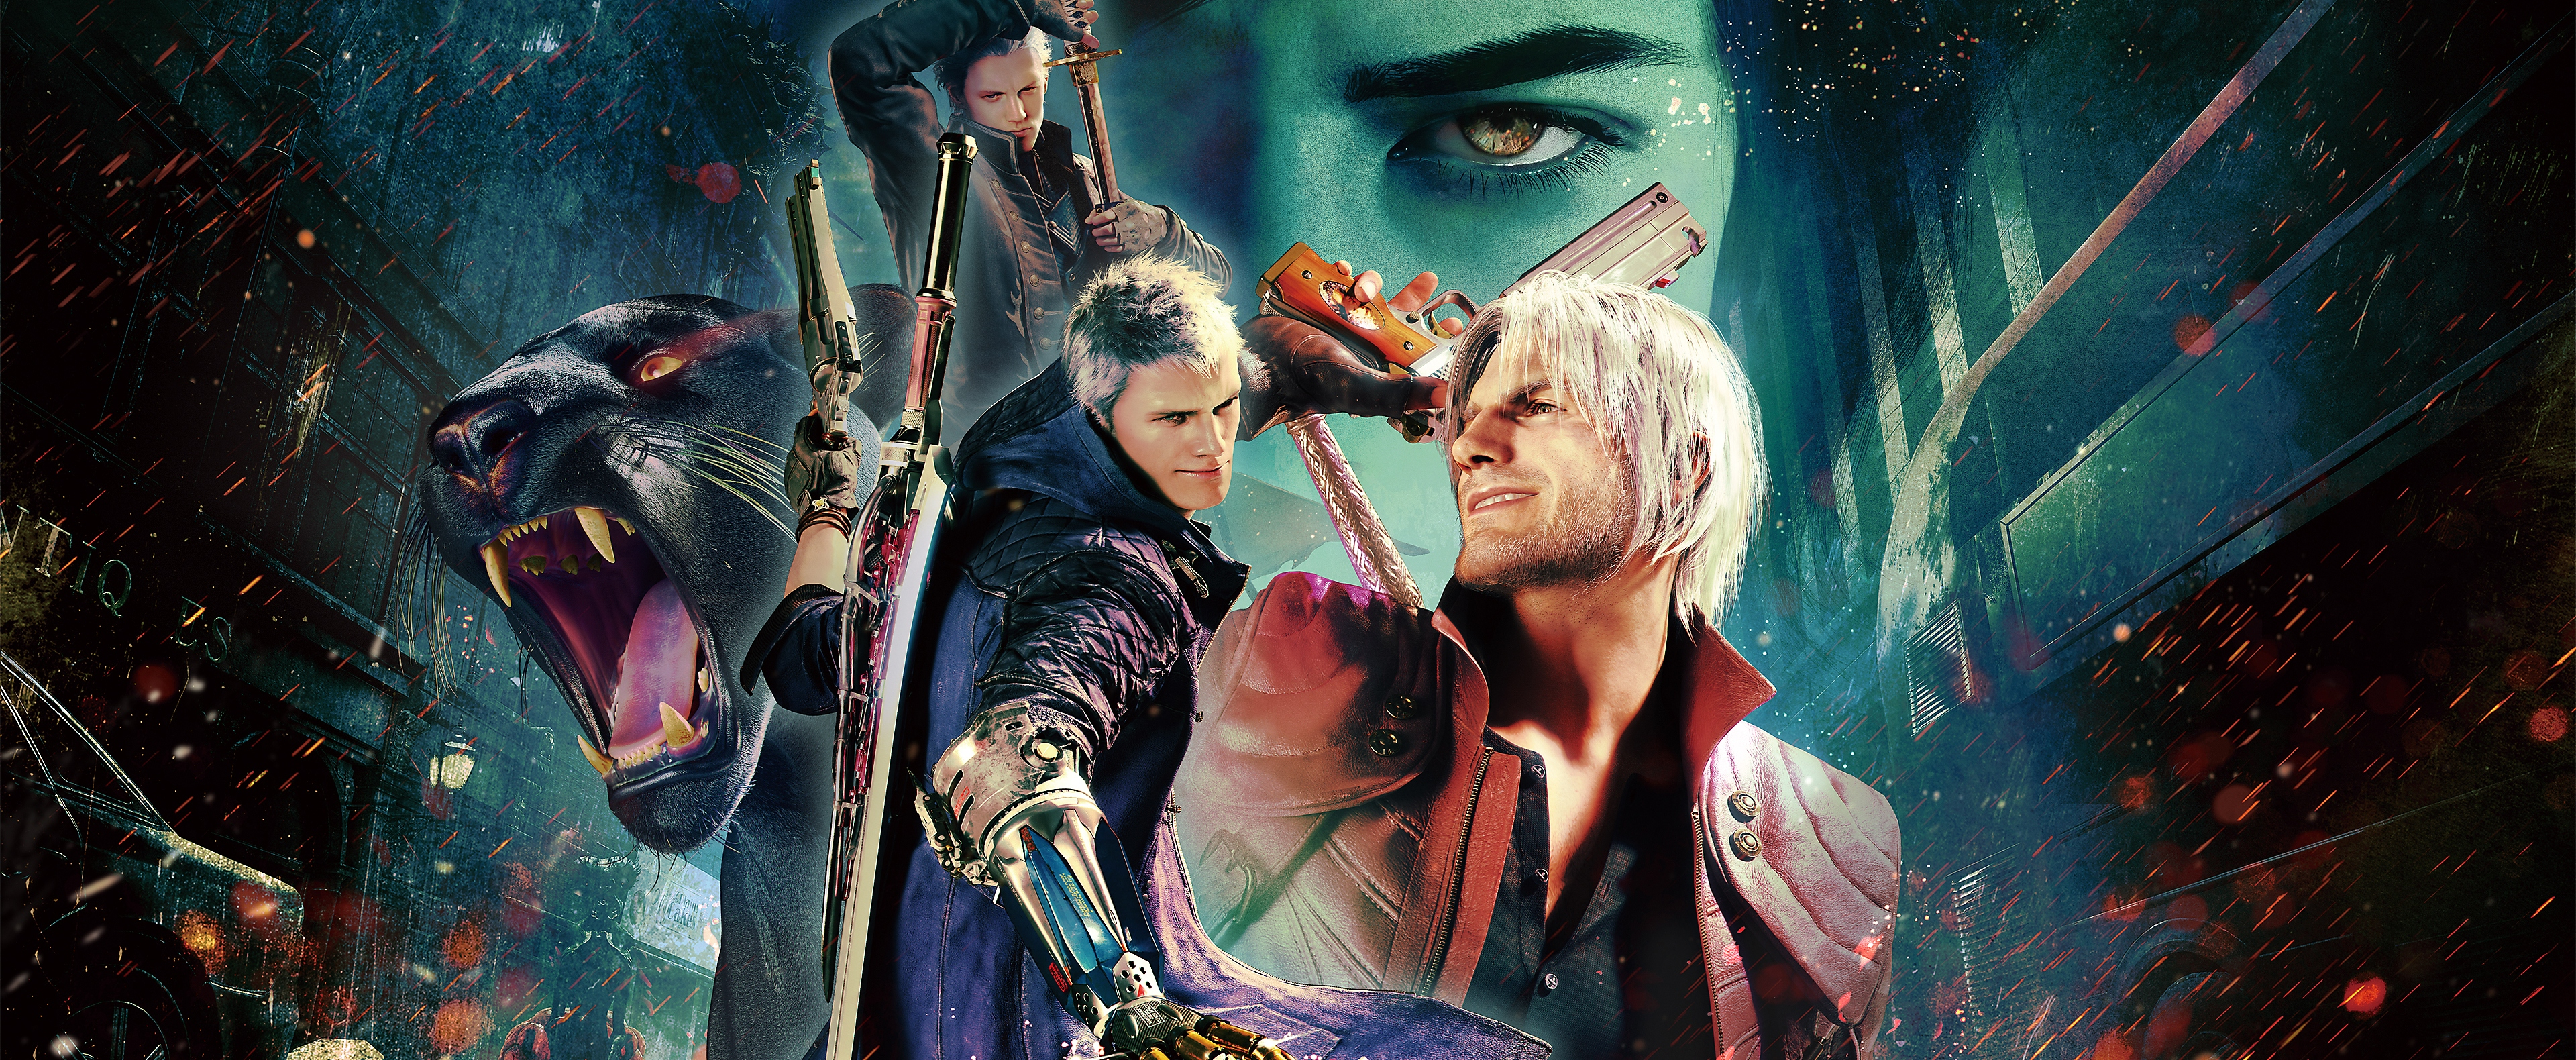 Devil May Cry 5: Special Edition - Tecla de retrocesso Art